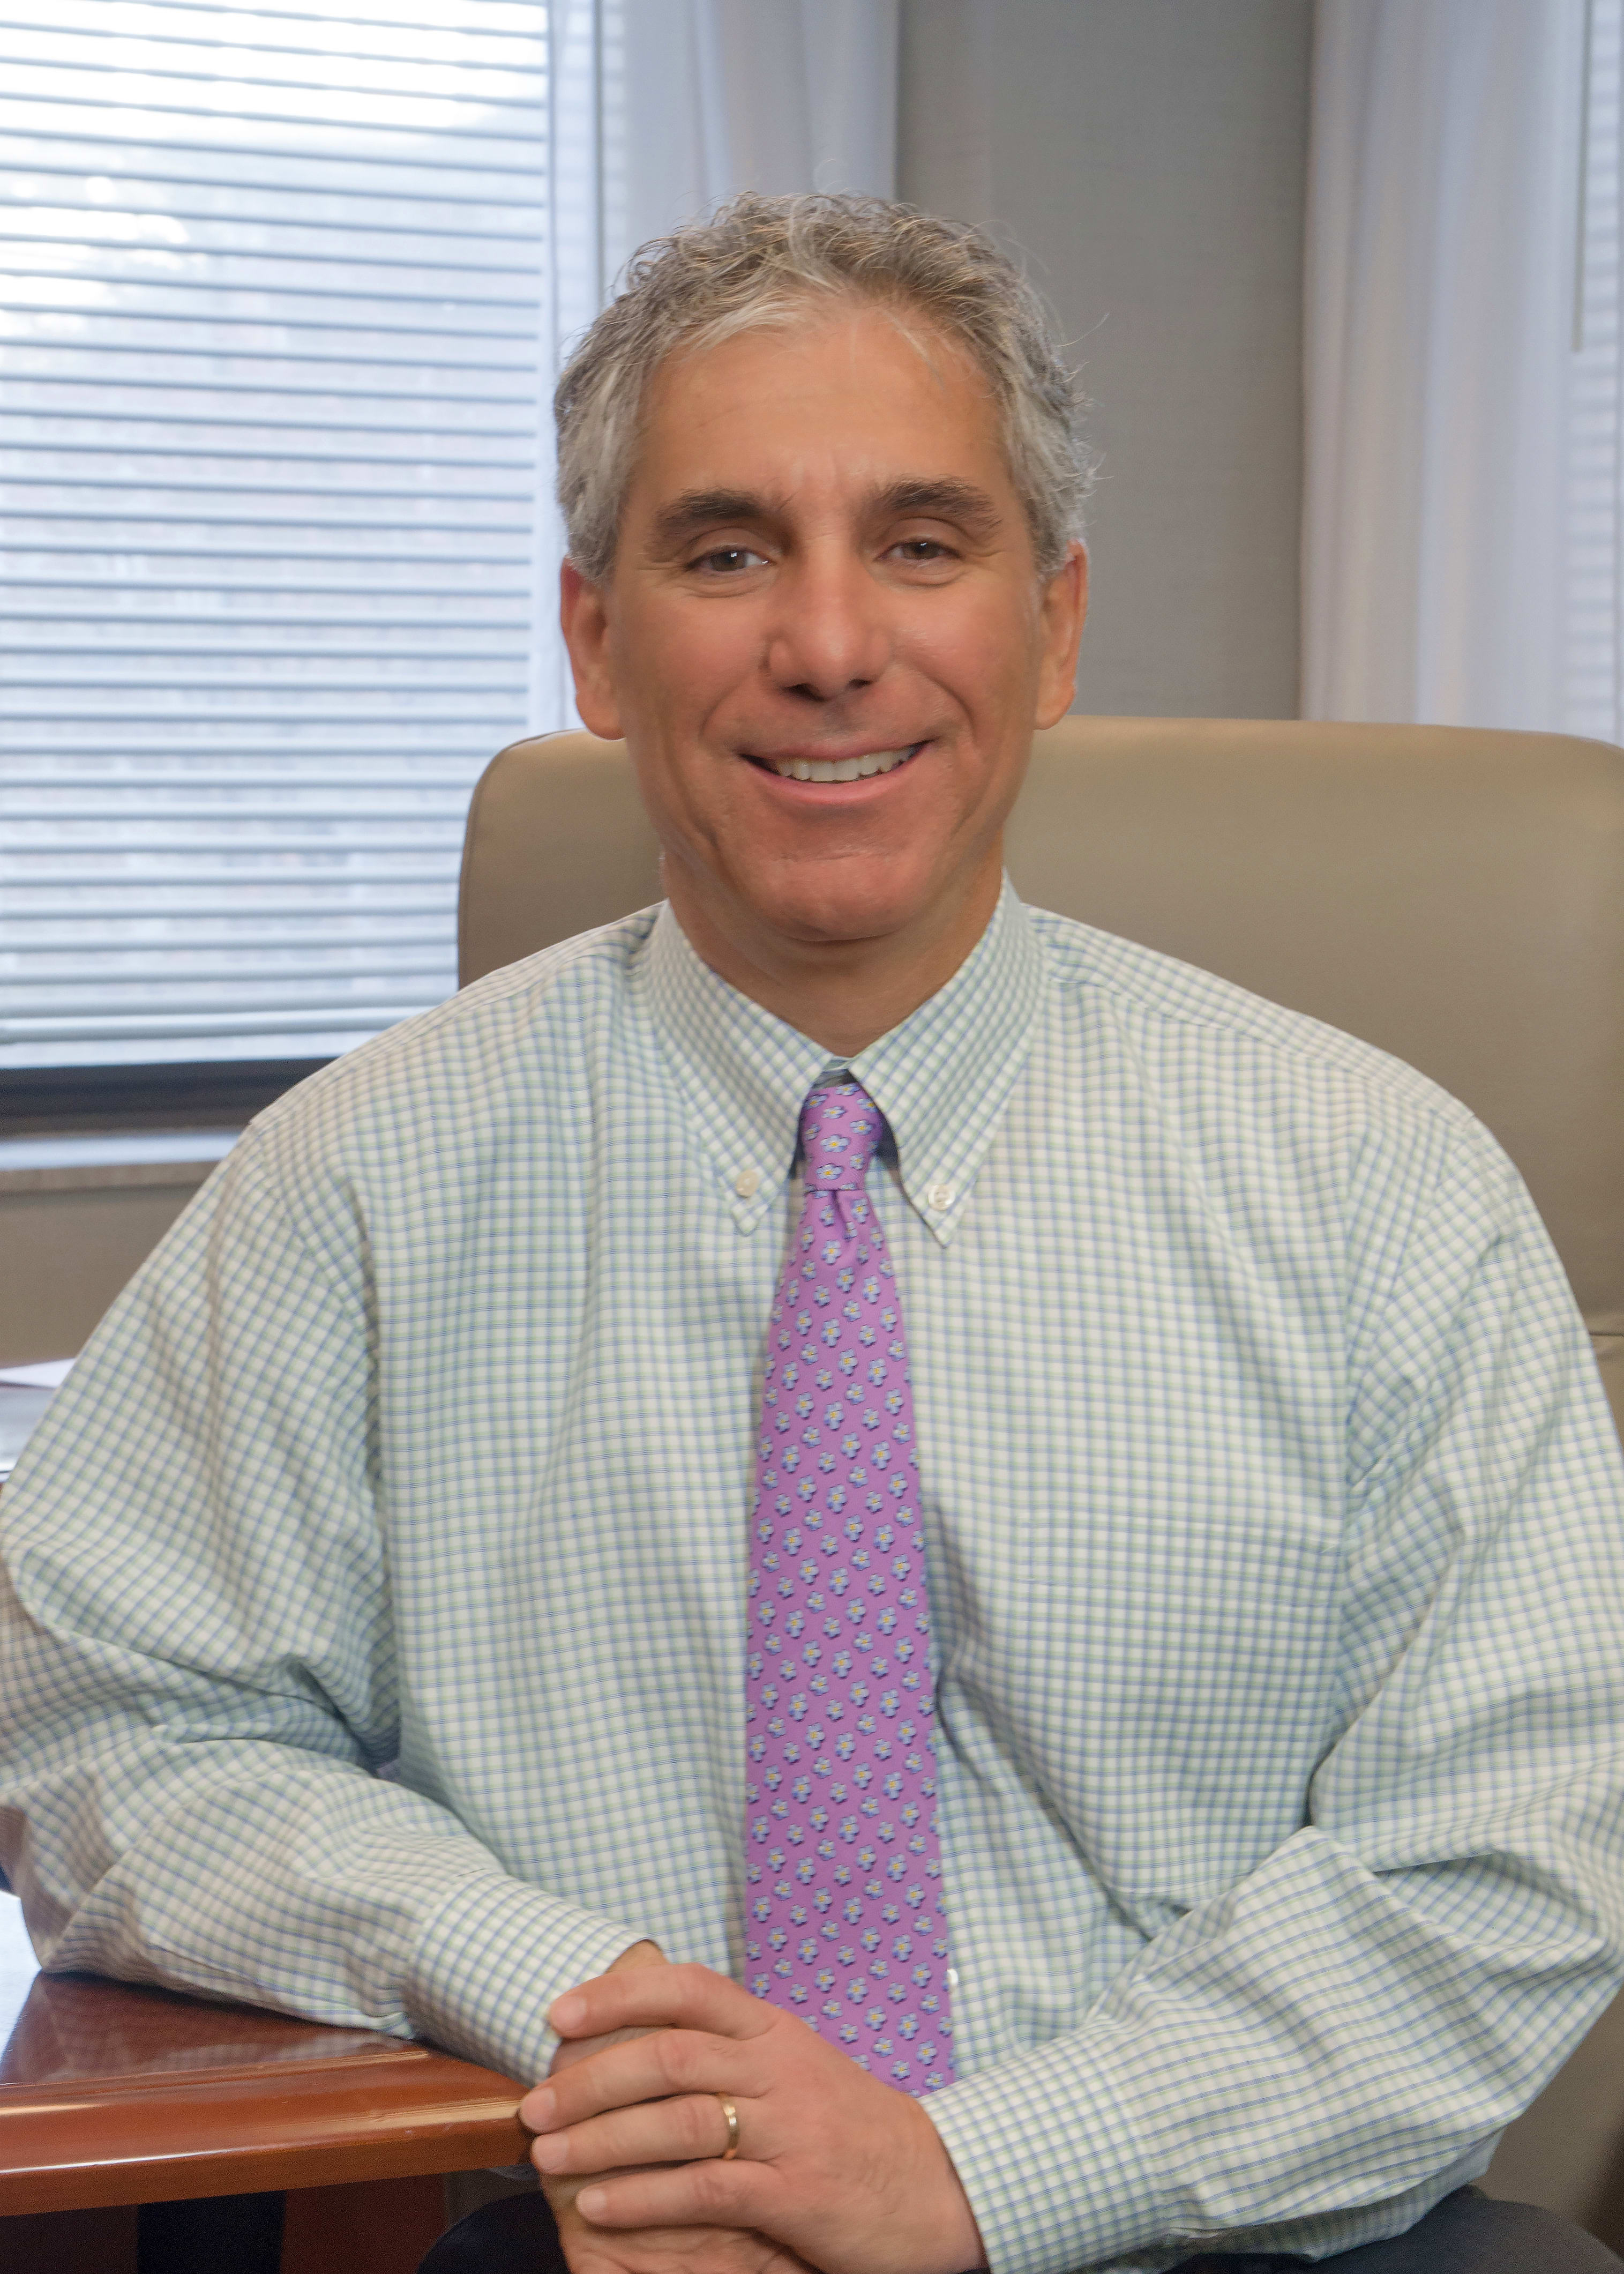 Vin Capece, President & CEO of Middlesex Health